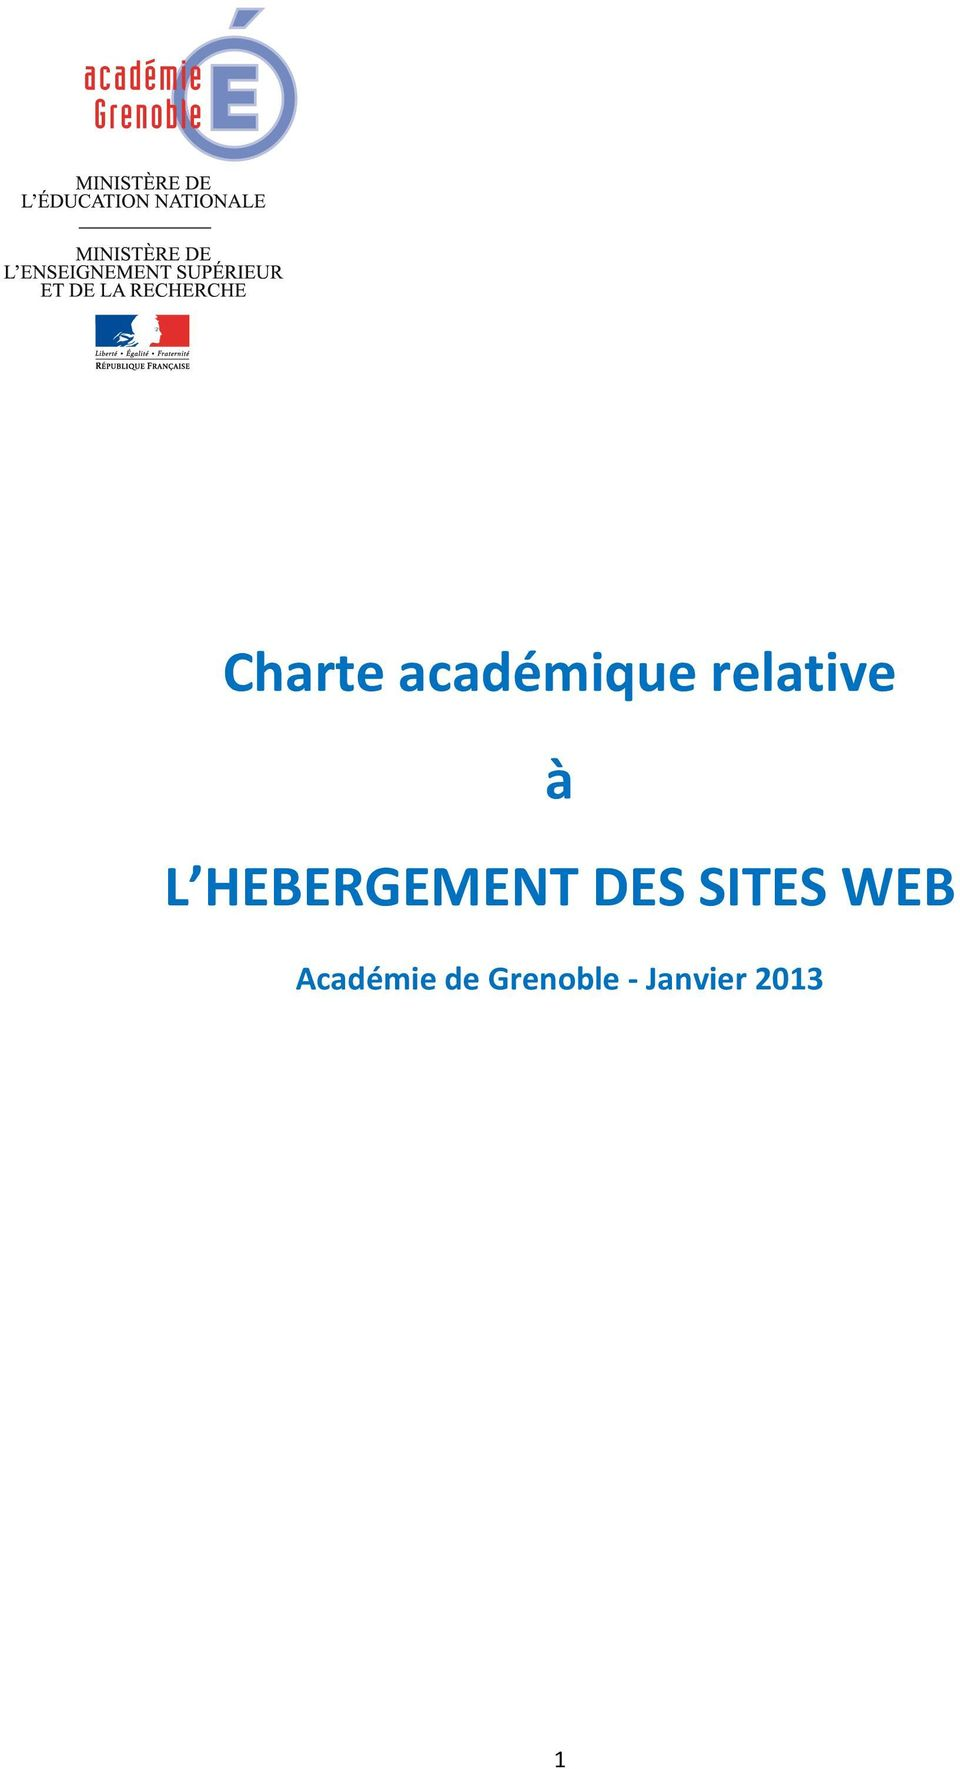 HEBERGEMENT DES SITES